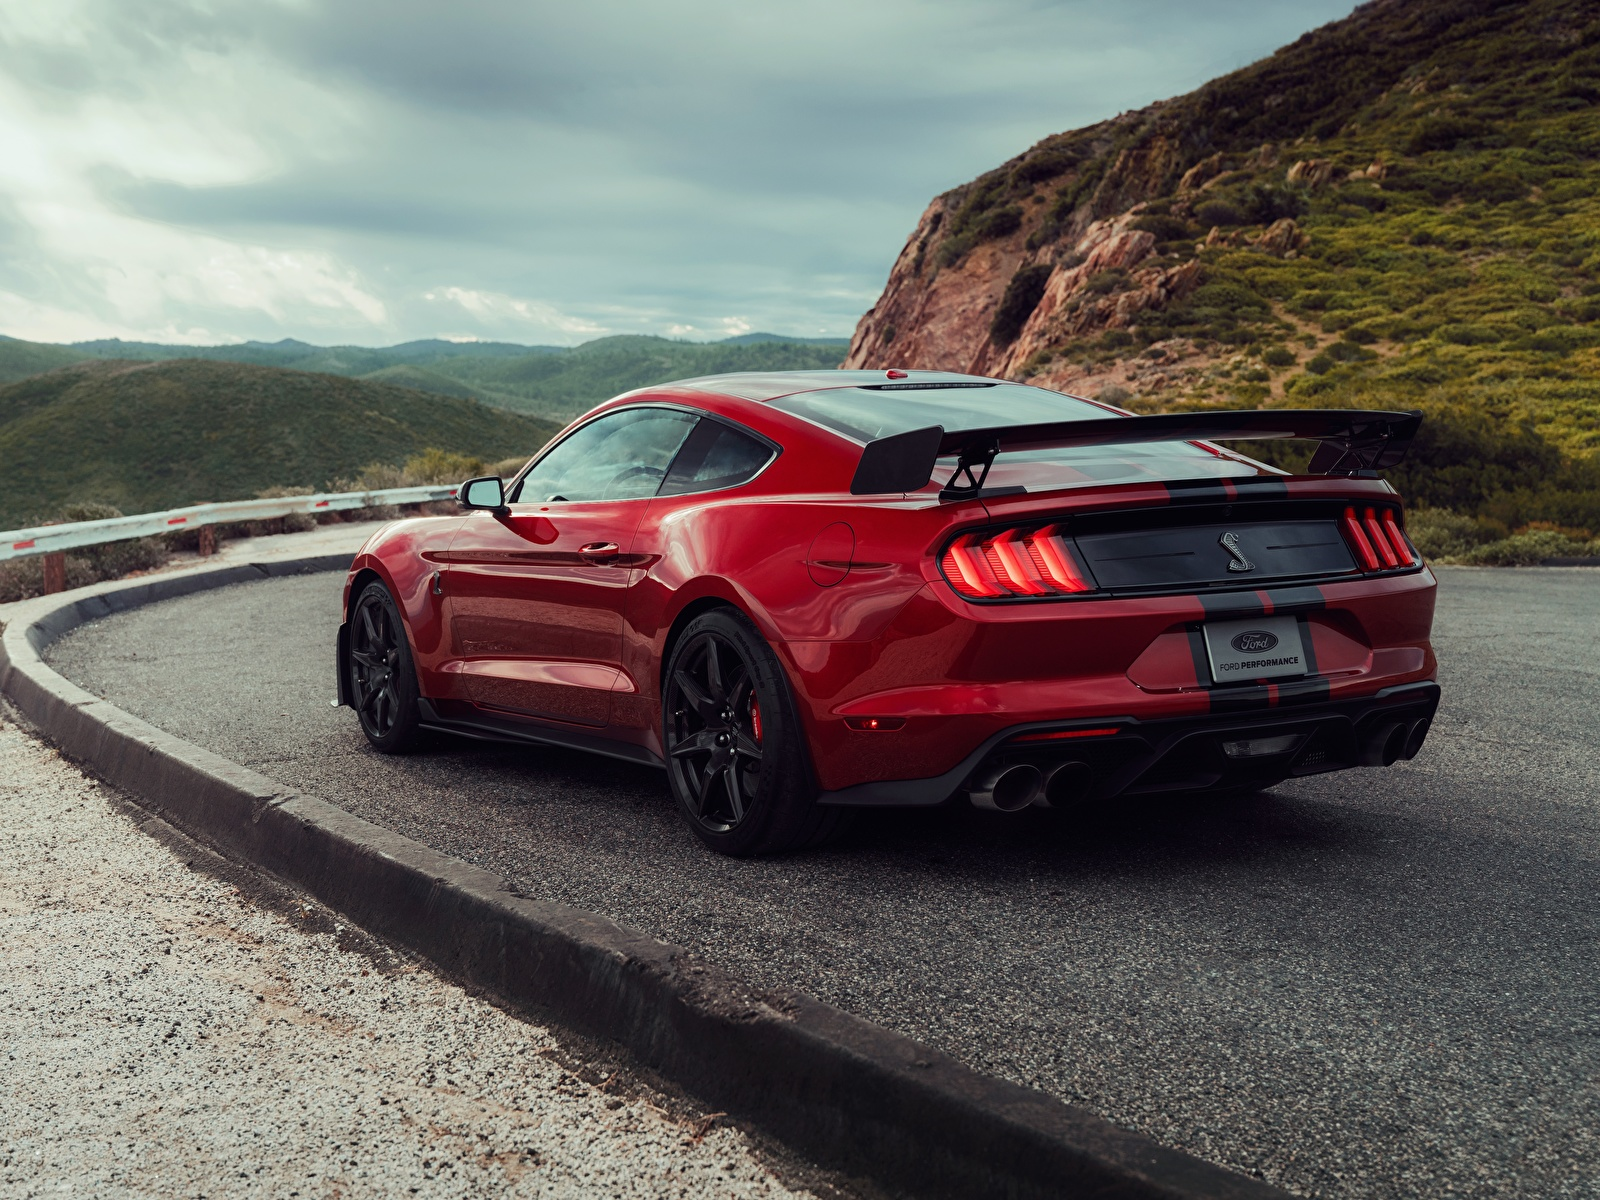 Desktop Wallpapers Ford Mustang Shelby Gt500 2019 Red Cars